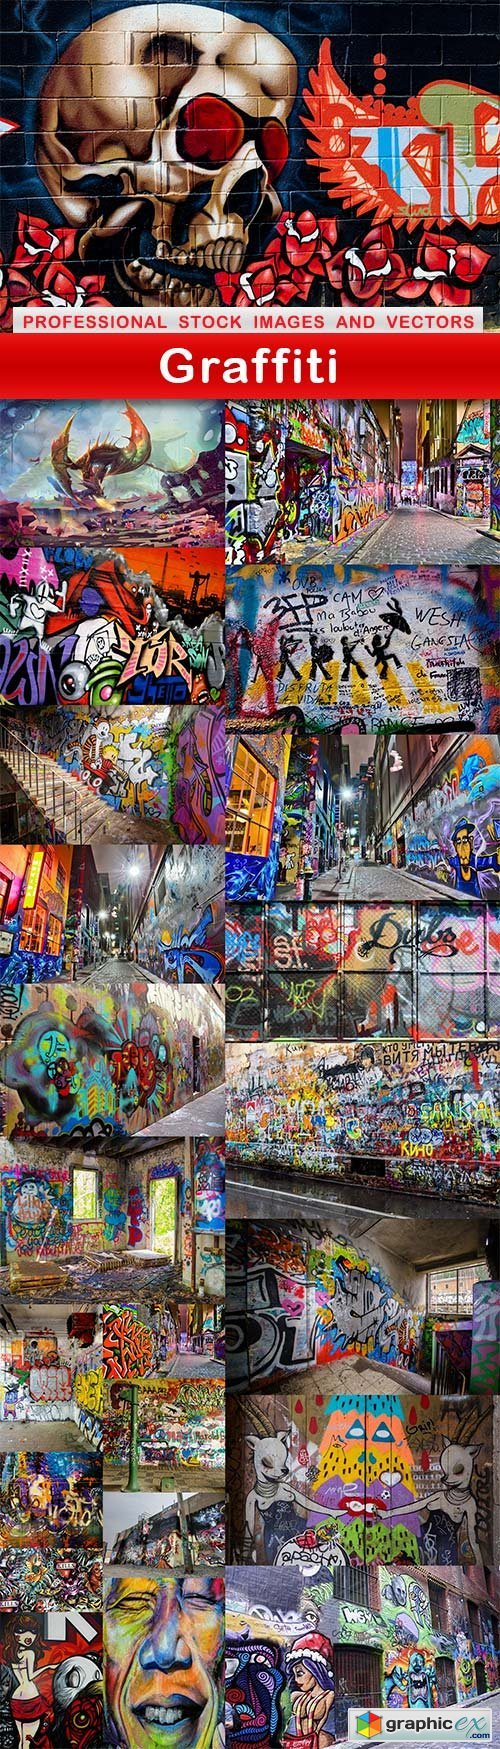 Graffiti - 23 UHQ JPEG